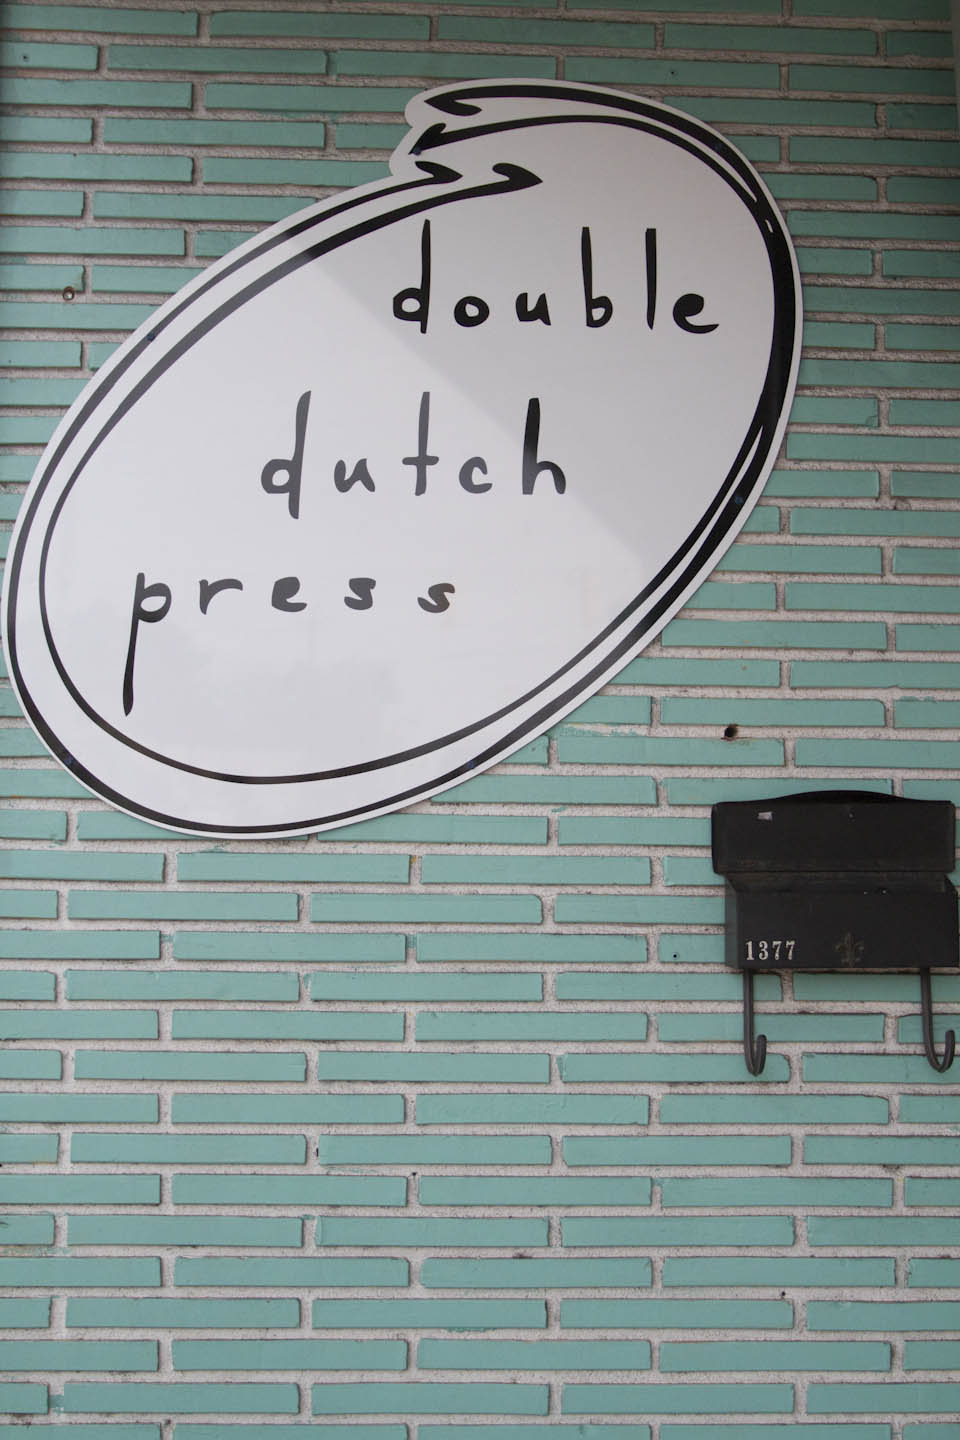 double dutch press-0121.jpg